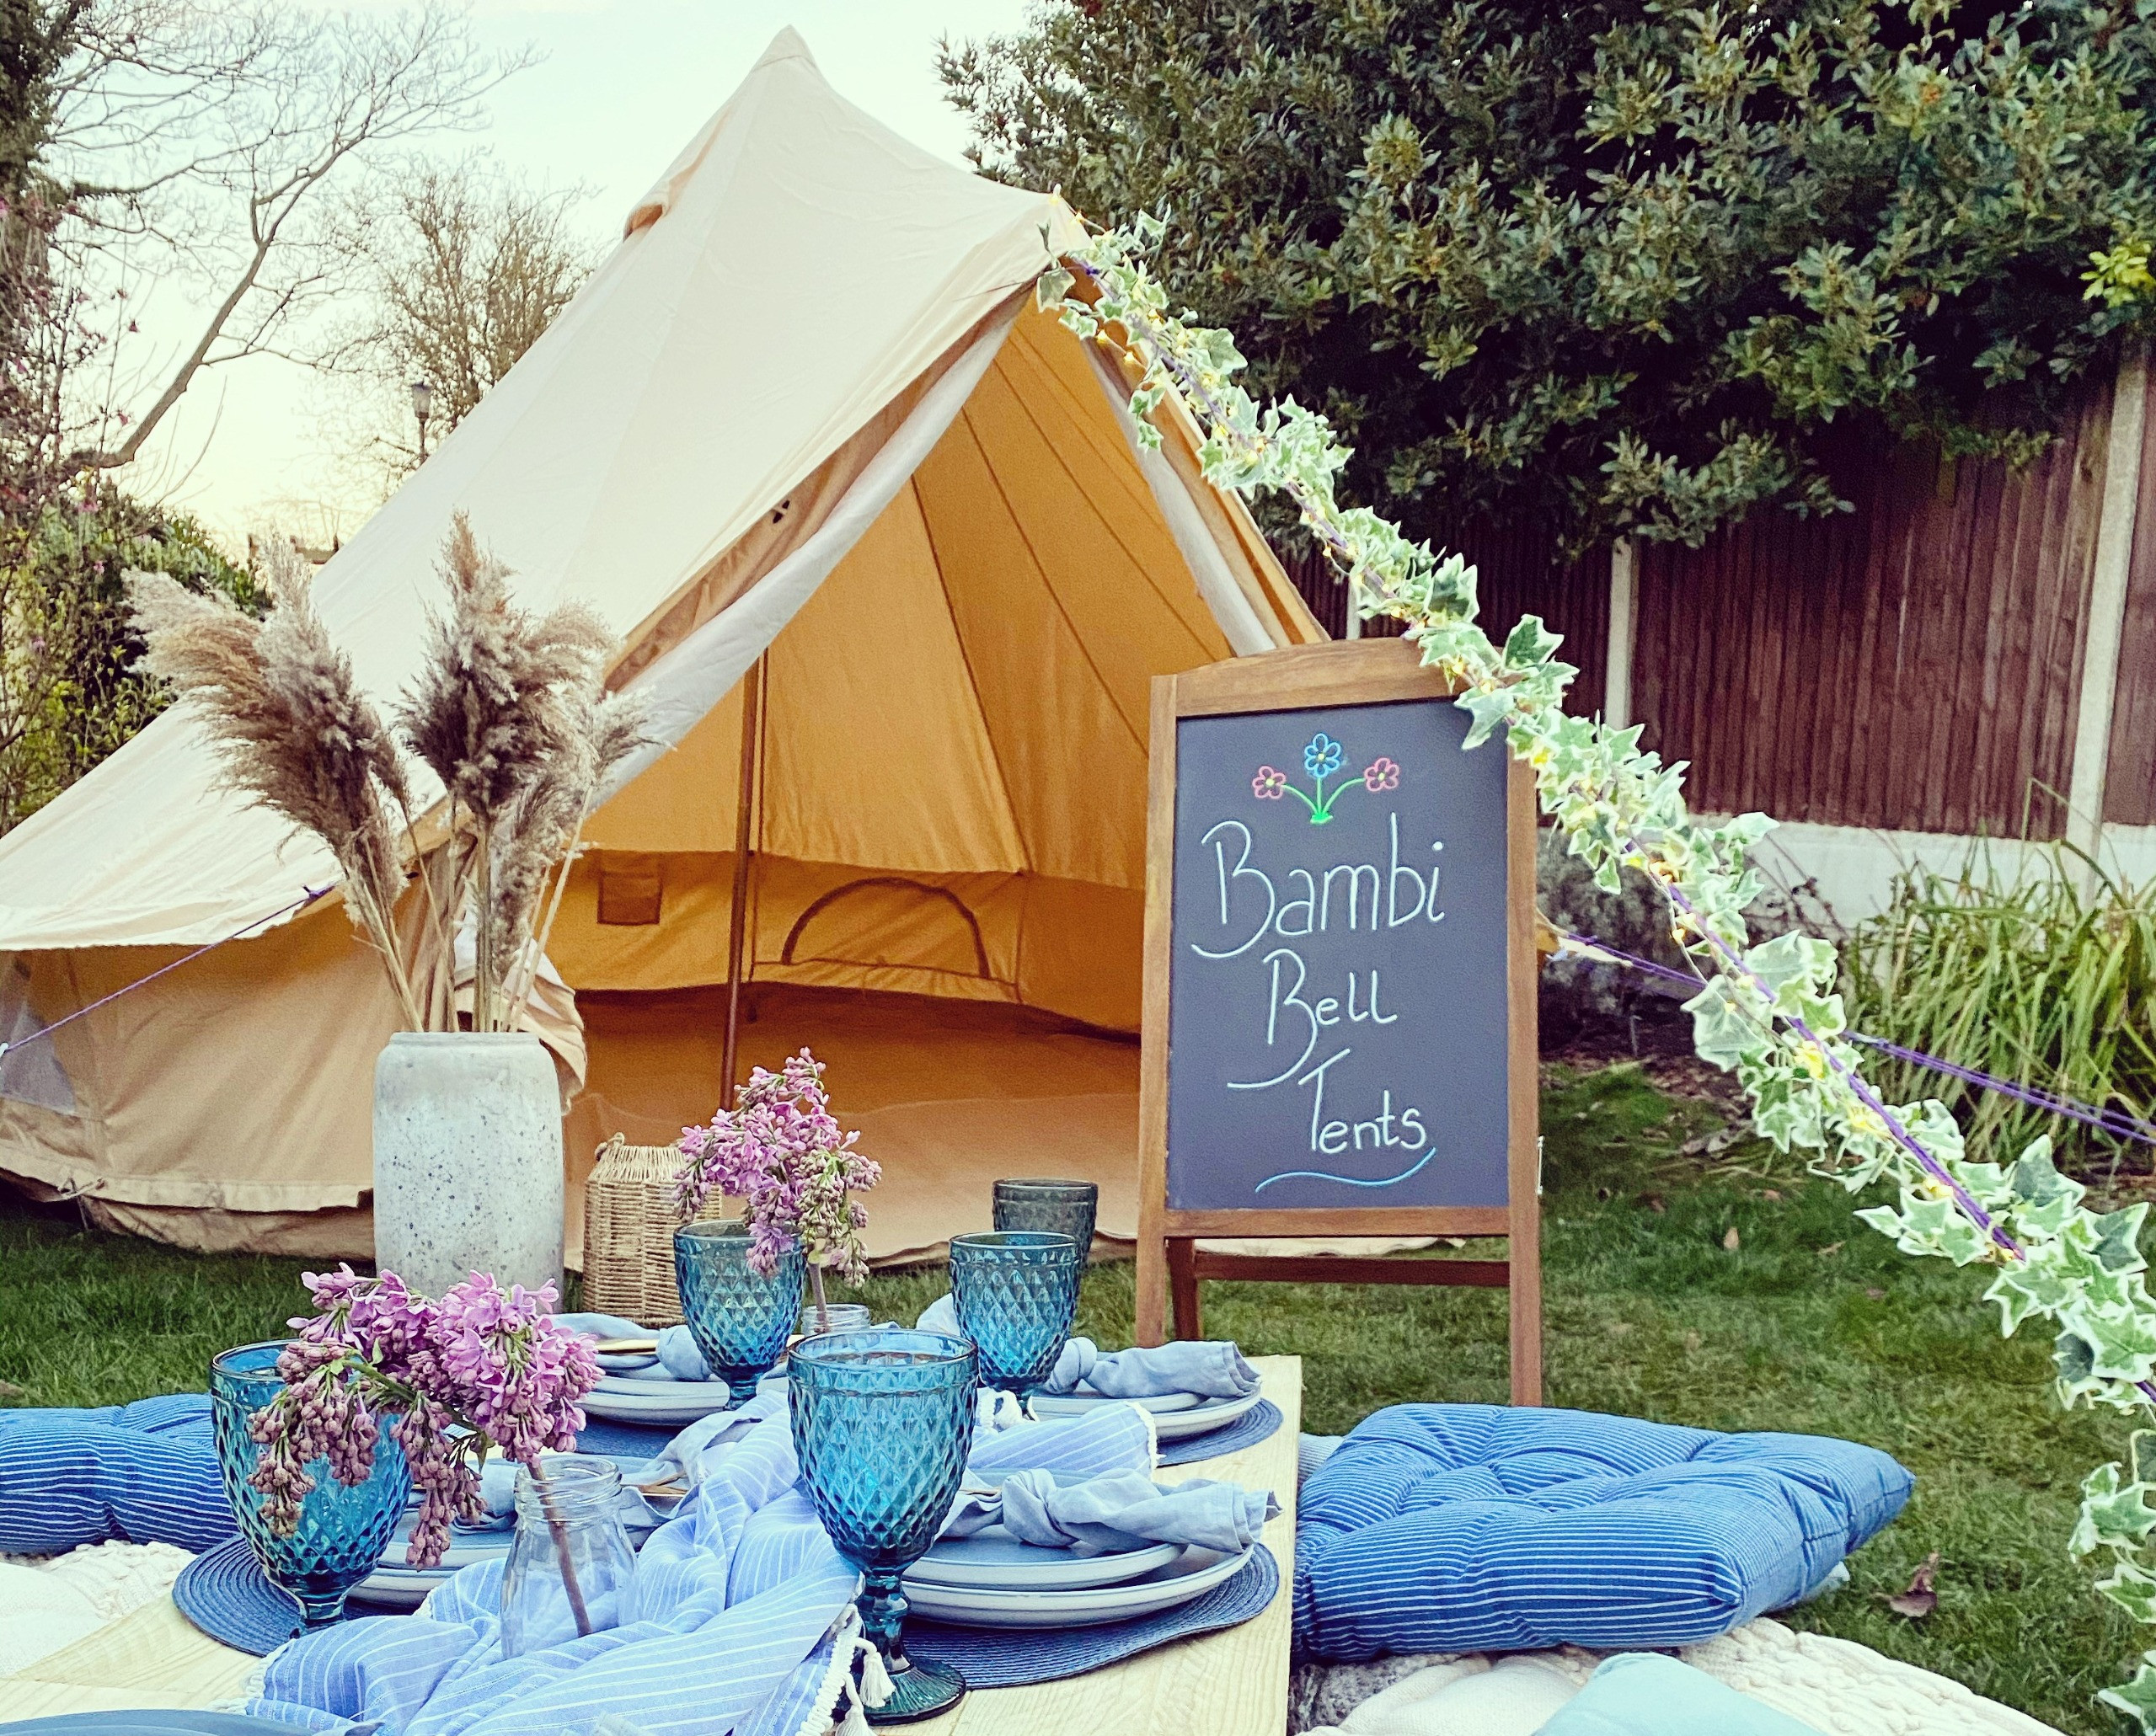 Summer Festival (Weekend Tub and Tent)